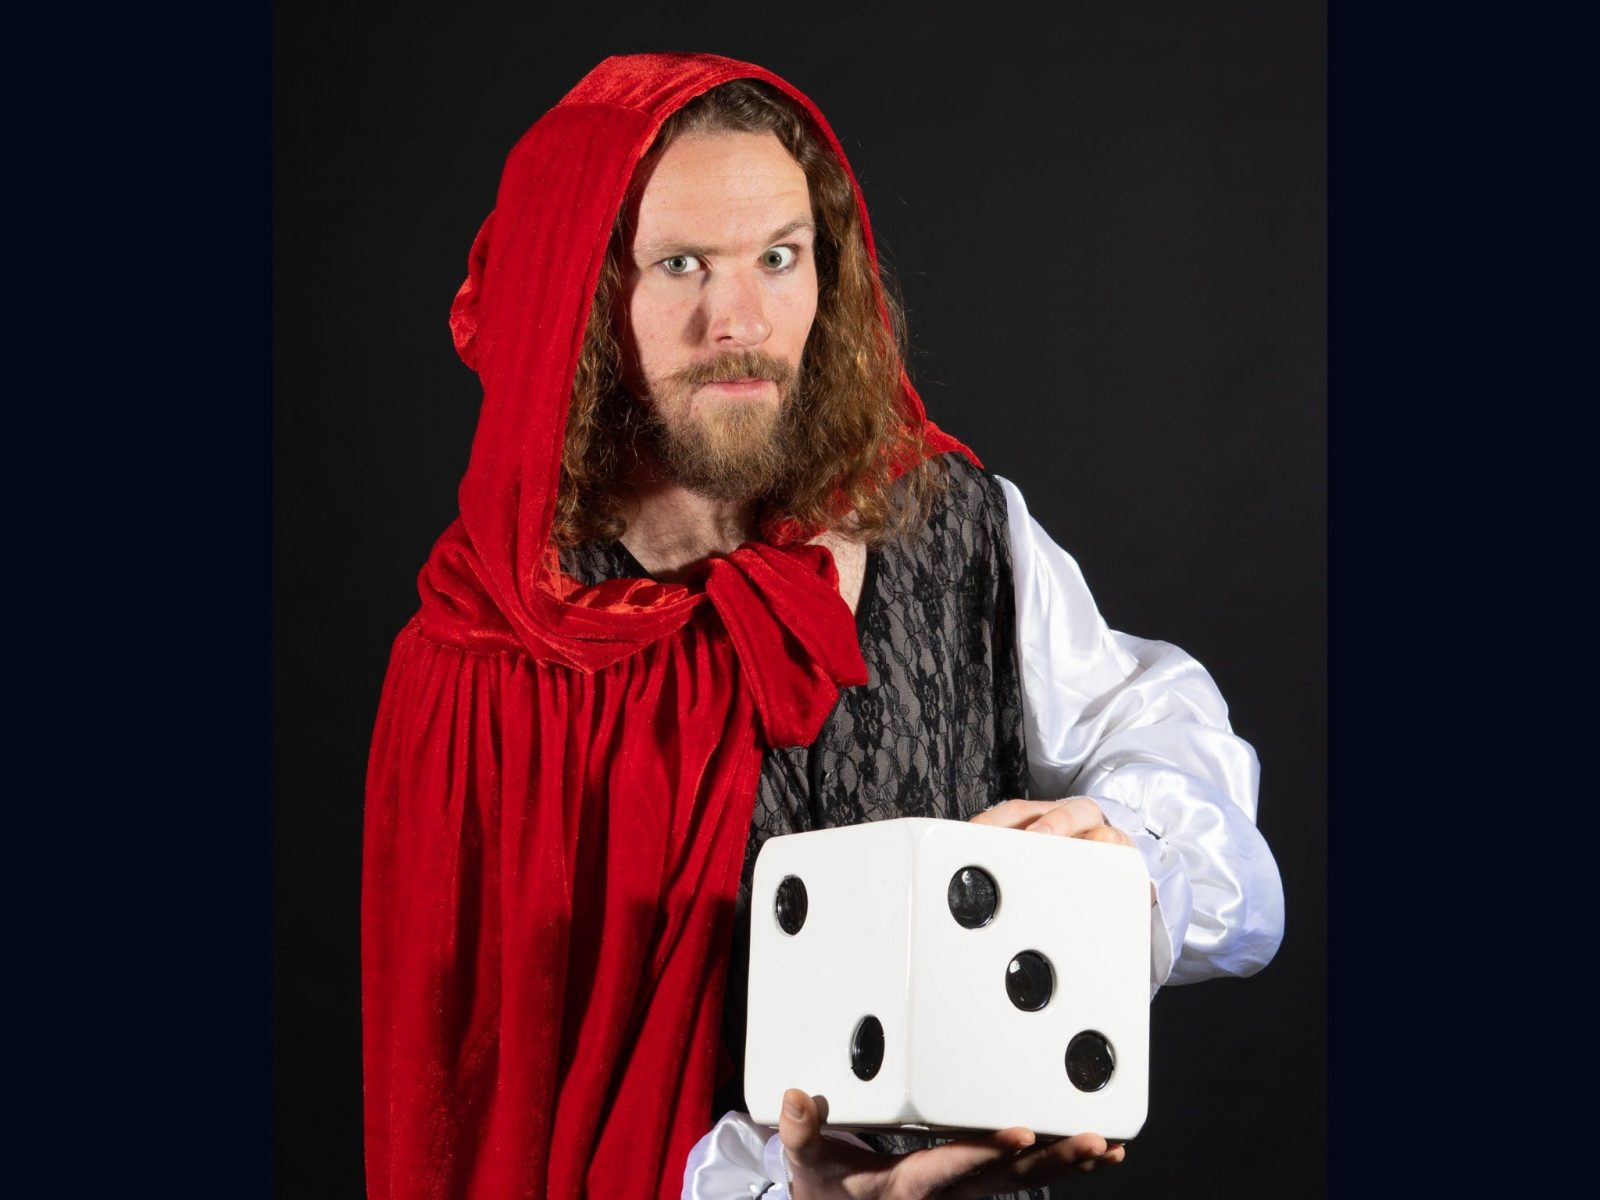 Man in red robe holding an oversized die